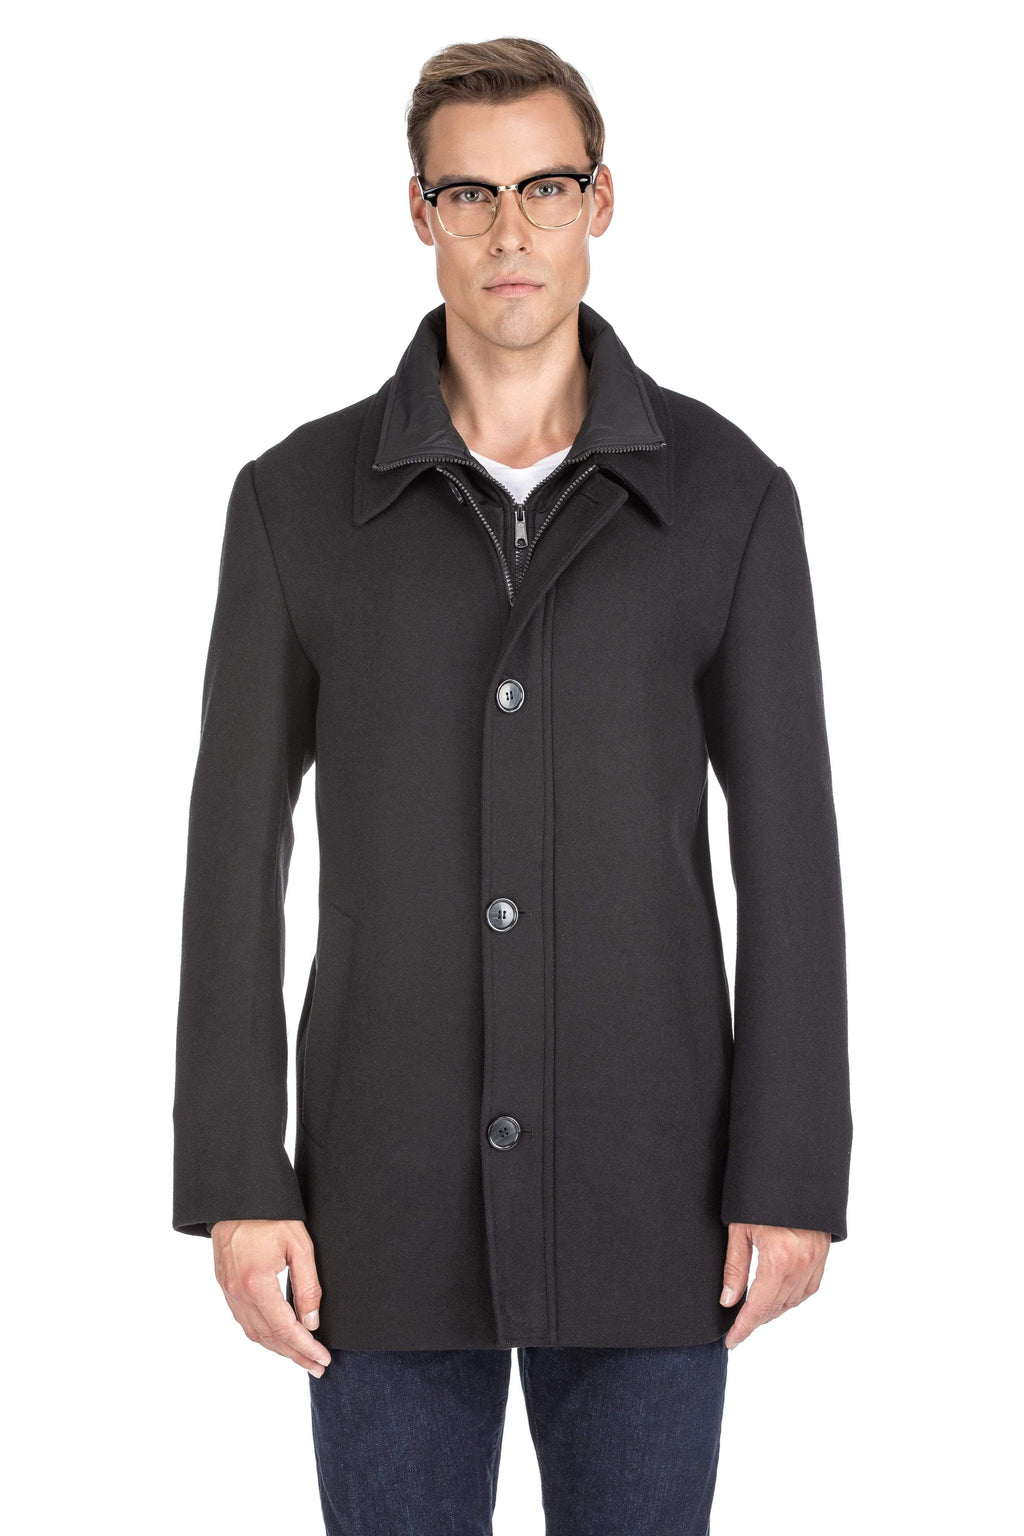 DAILYHAUTE Men's coats BLACK / SMALL Braveman Men's Classic Fit Wool Blend Bibbed Topcoat